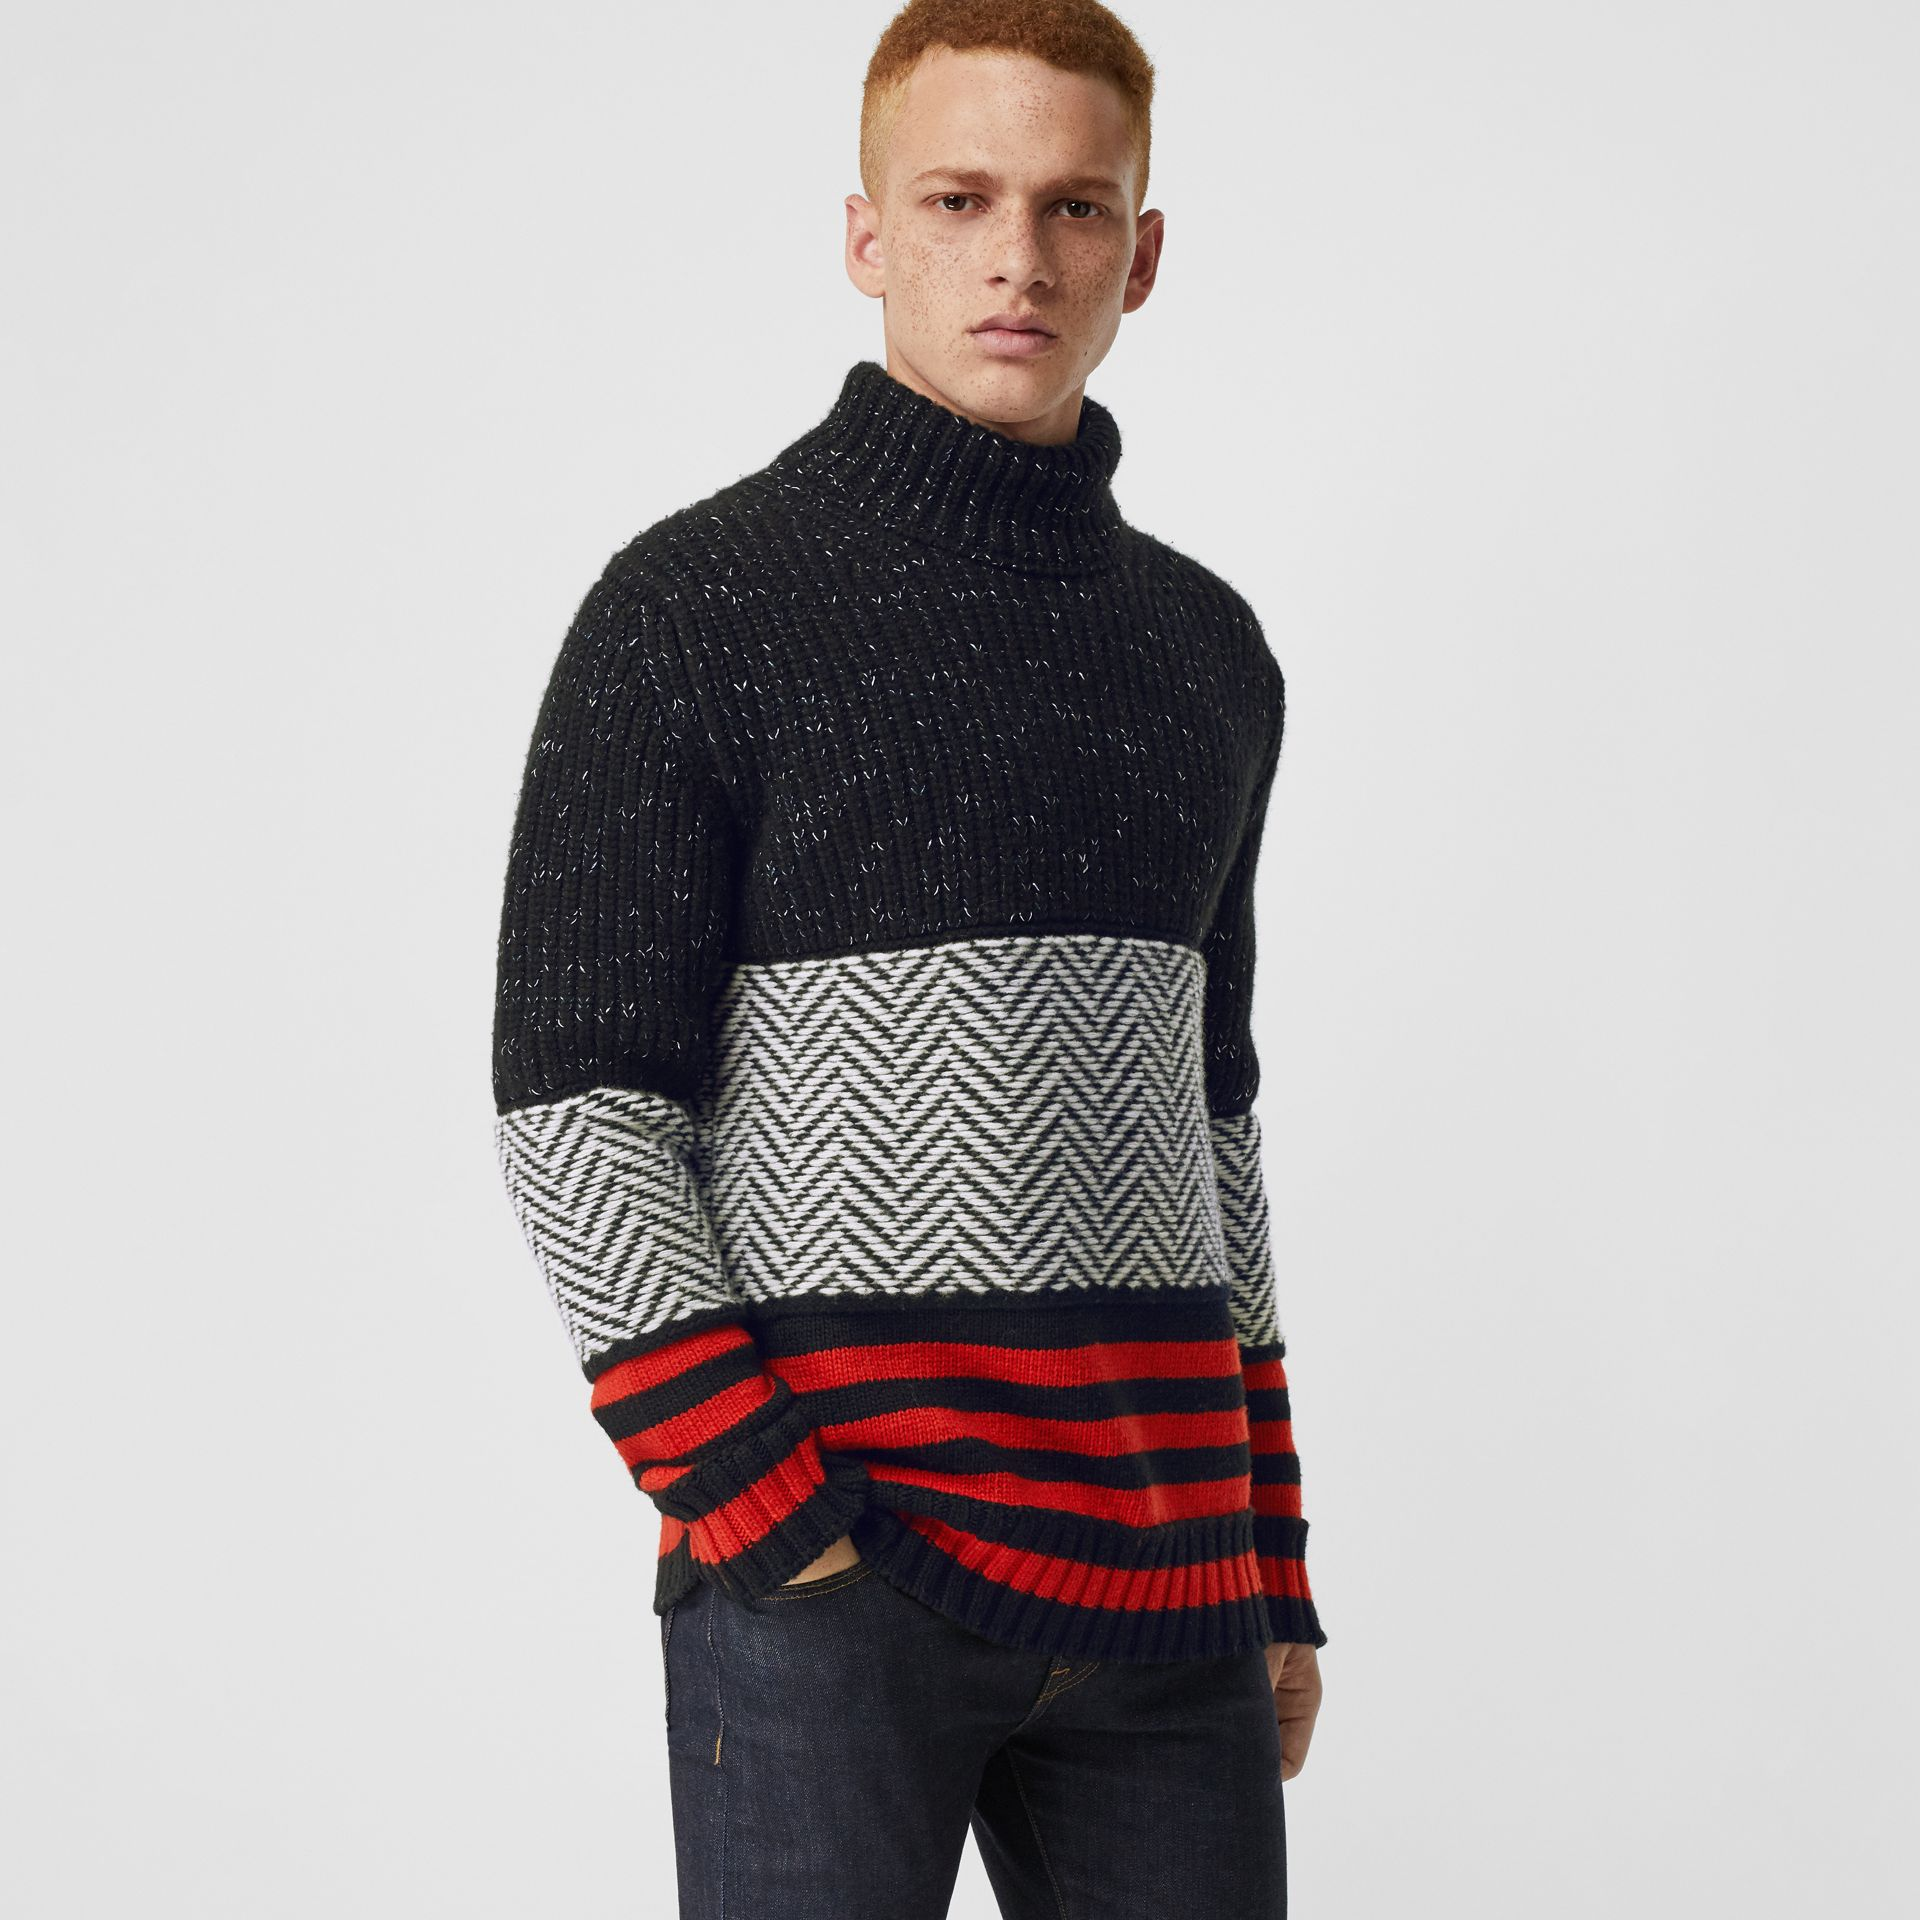 Contrast Knit Wool Cashmere Blend Sweater in Black - Men | Burberry Hong Kong - gallery image 5